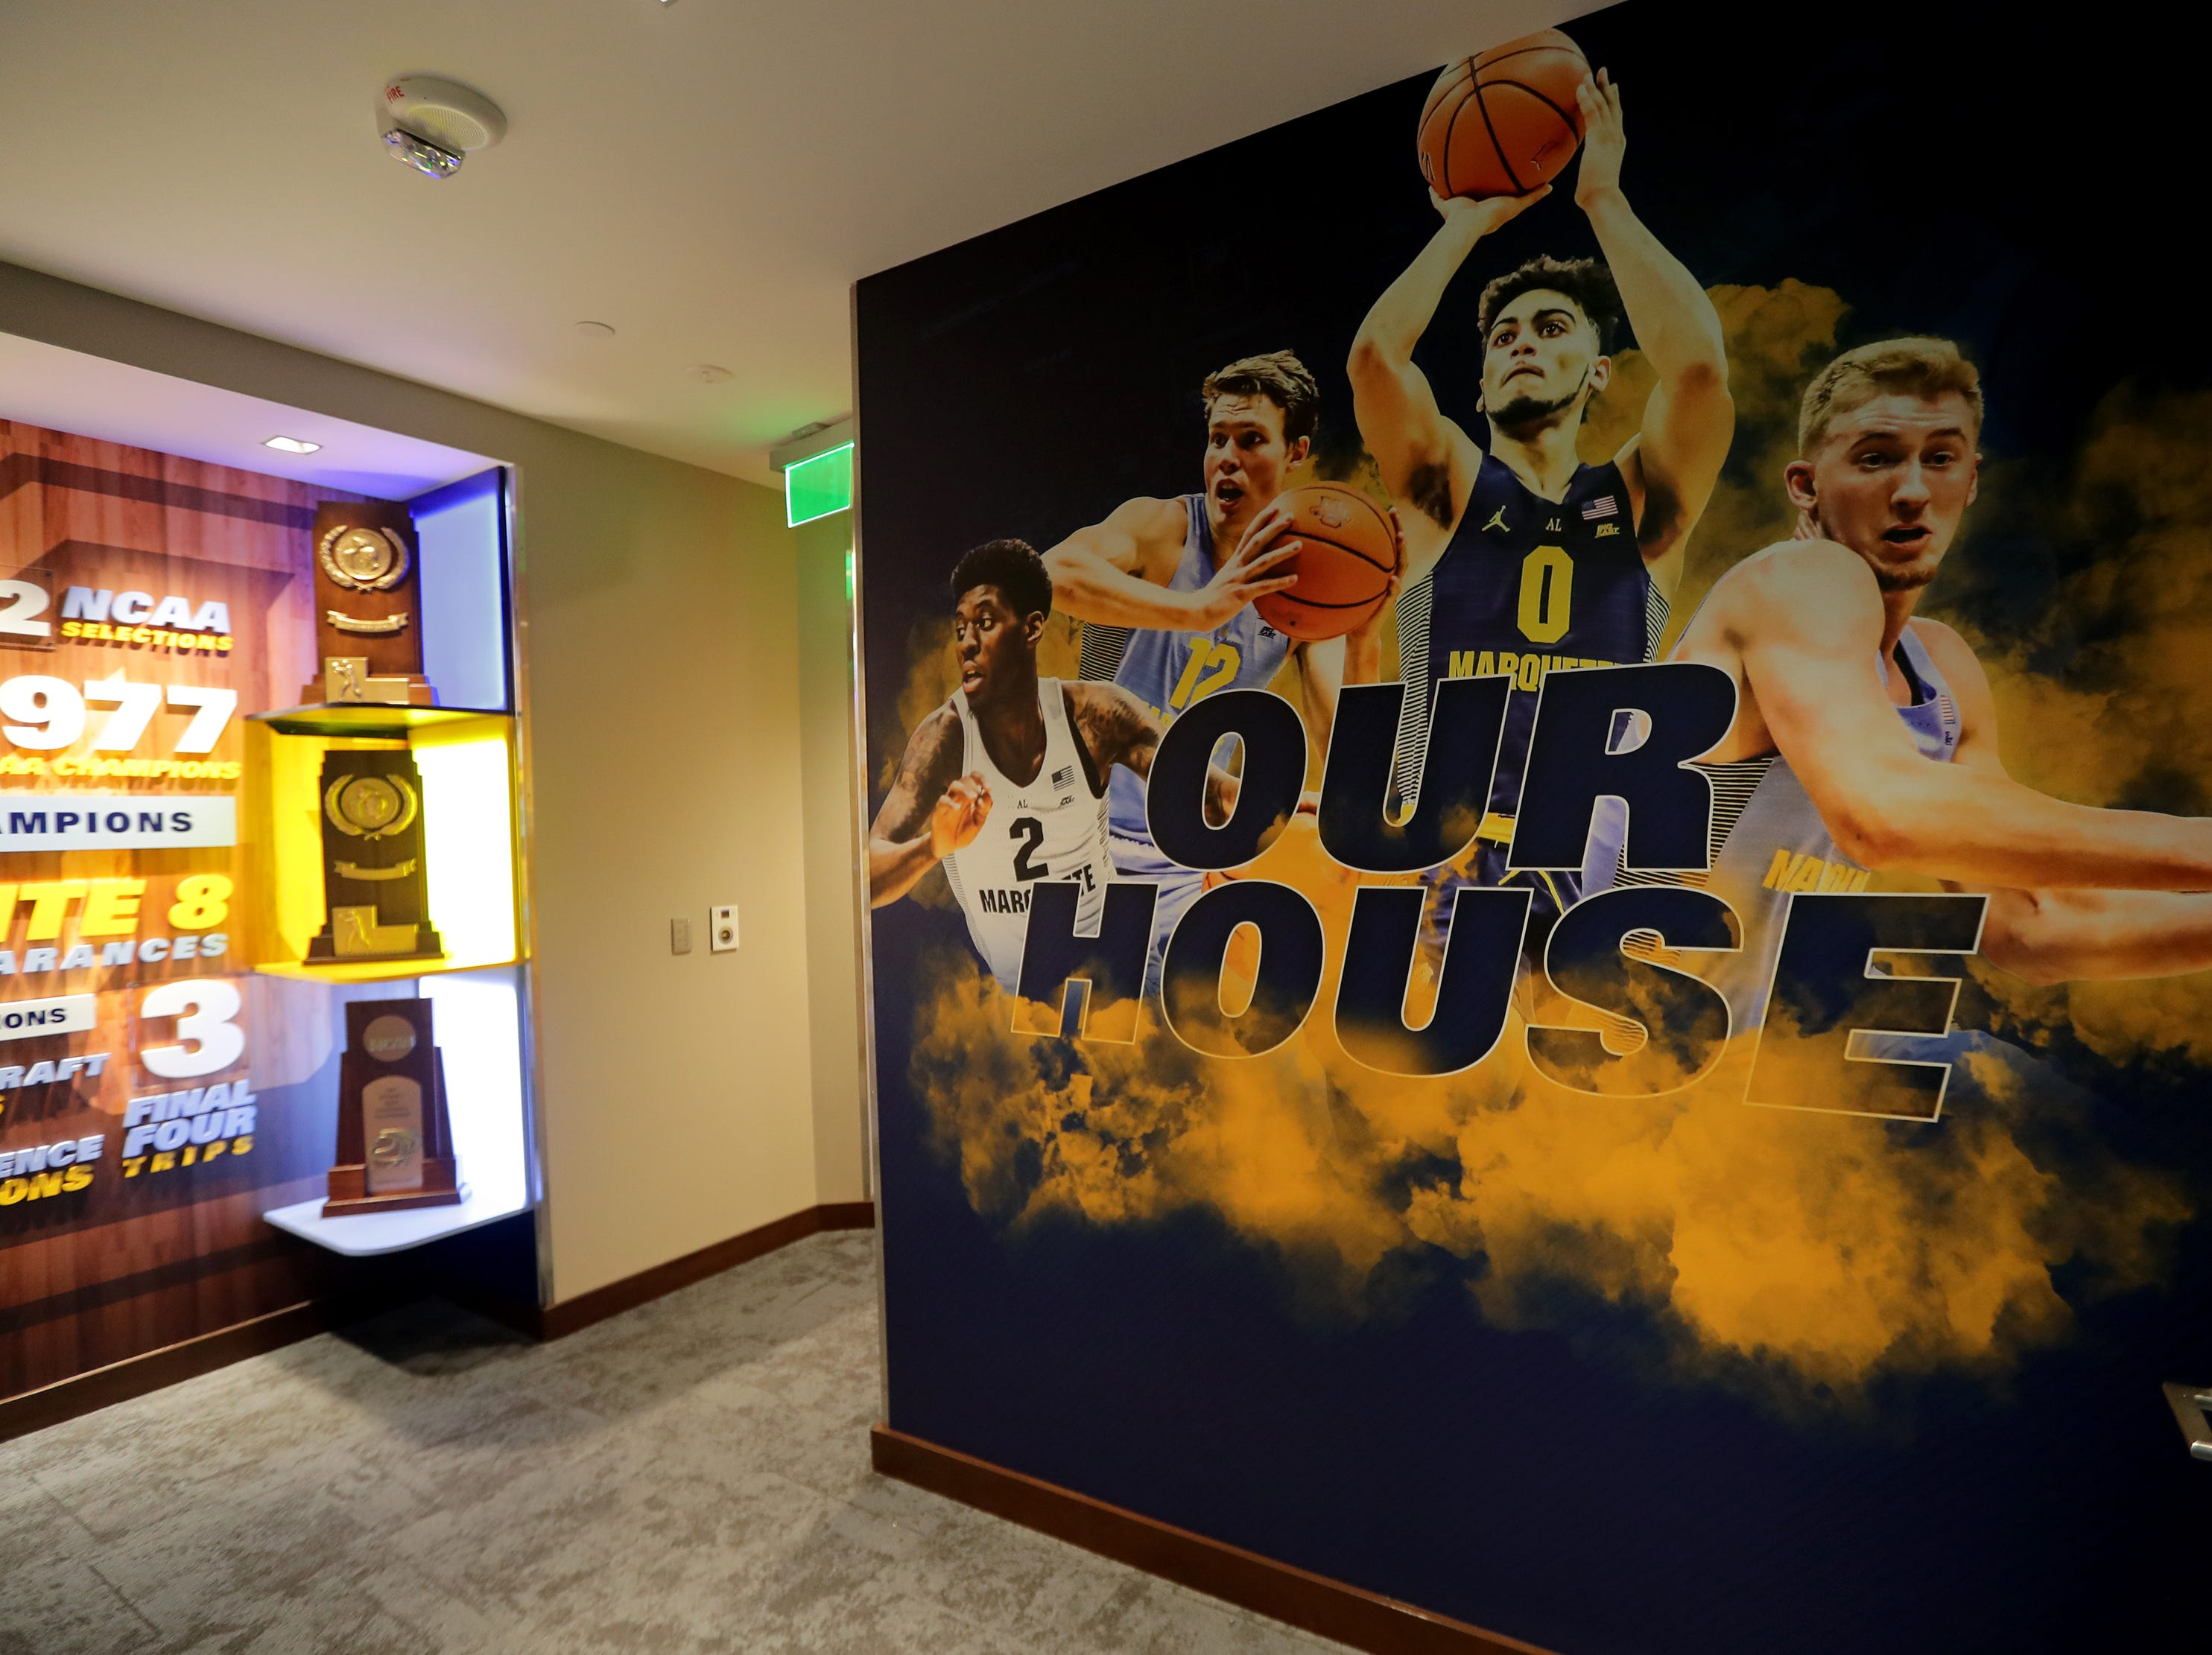 A banner with current Marquette players is seen when entering the locker room. The Marquette mens' basketball team locker room is complete at the new Fiserve Forum, the home of the Milwaukee Bucks. Monday, August 27, 2018.  -  Photo by Mike De Sisti / Milwaukee Journal Sentinel